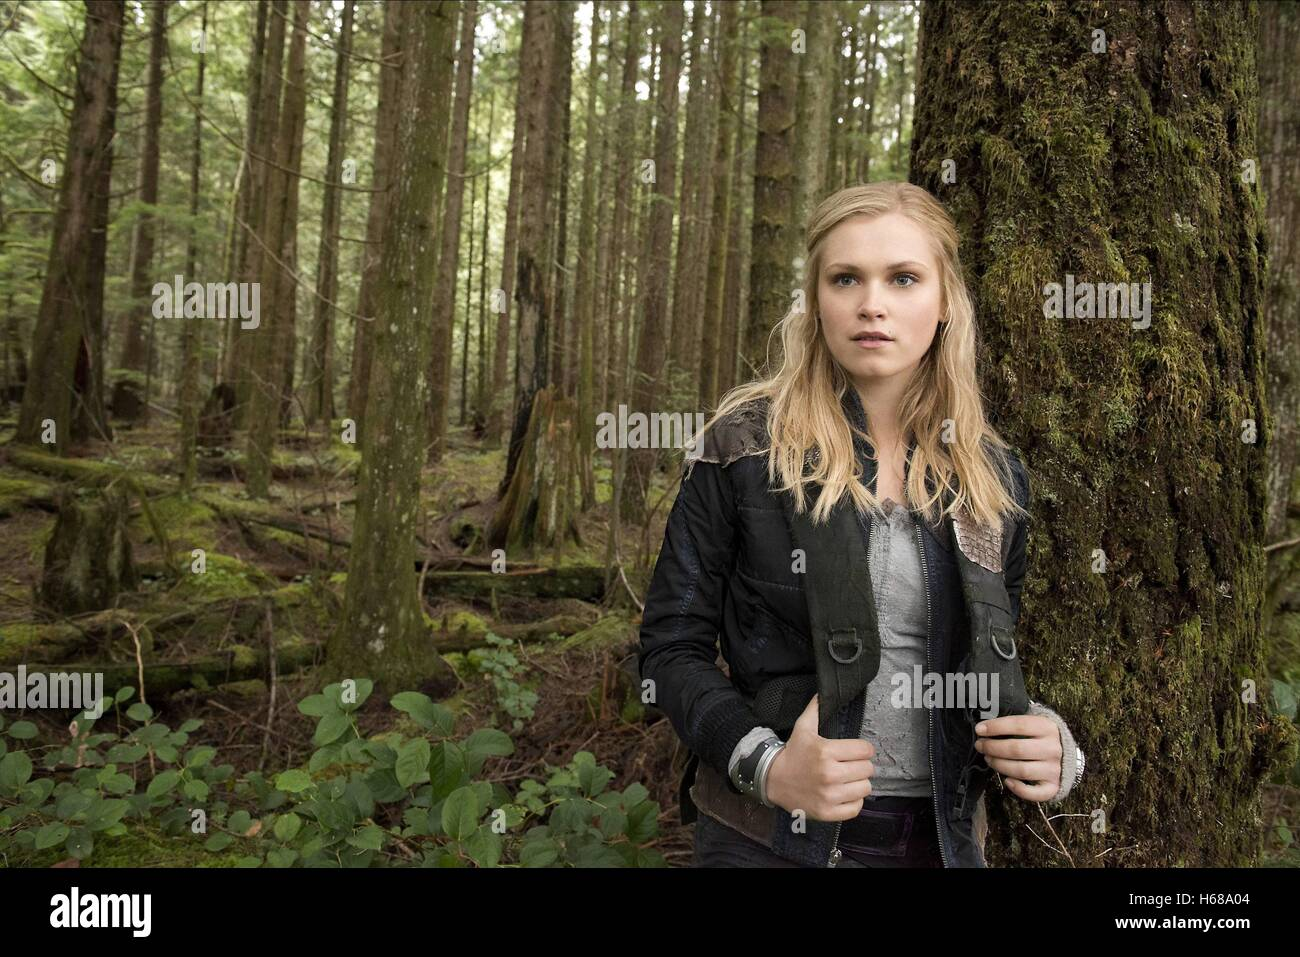 ELIZA TAYLOR THE HUNDRED; THE 100 (2014) - Stock Image